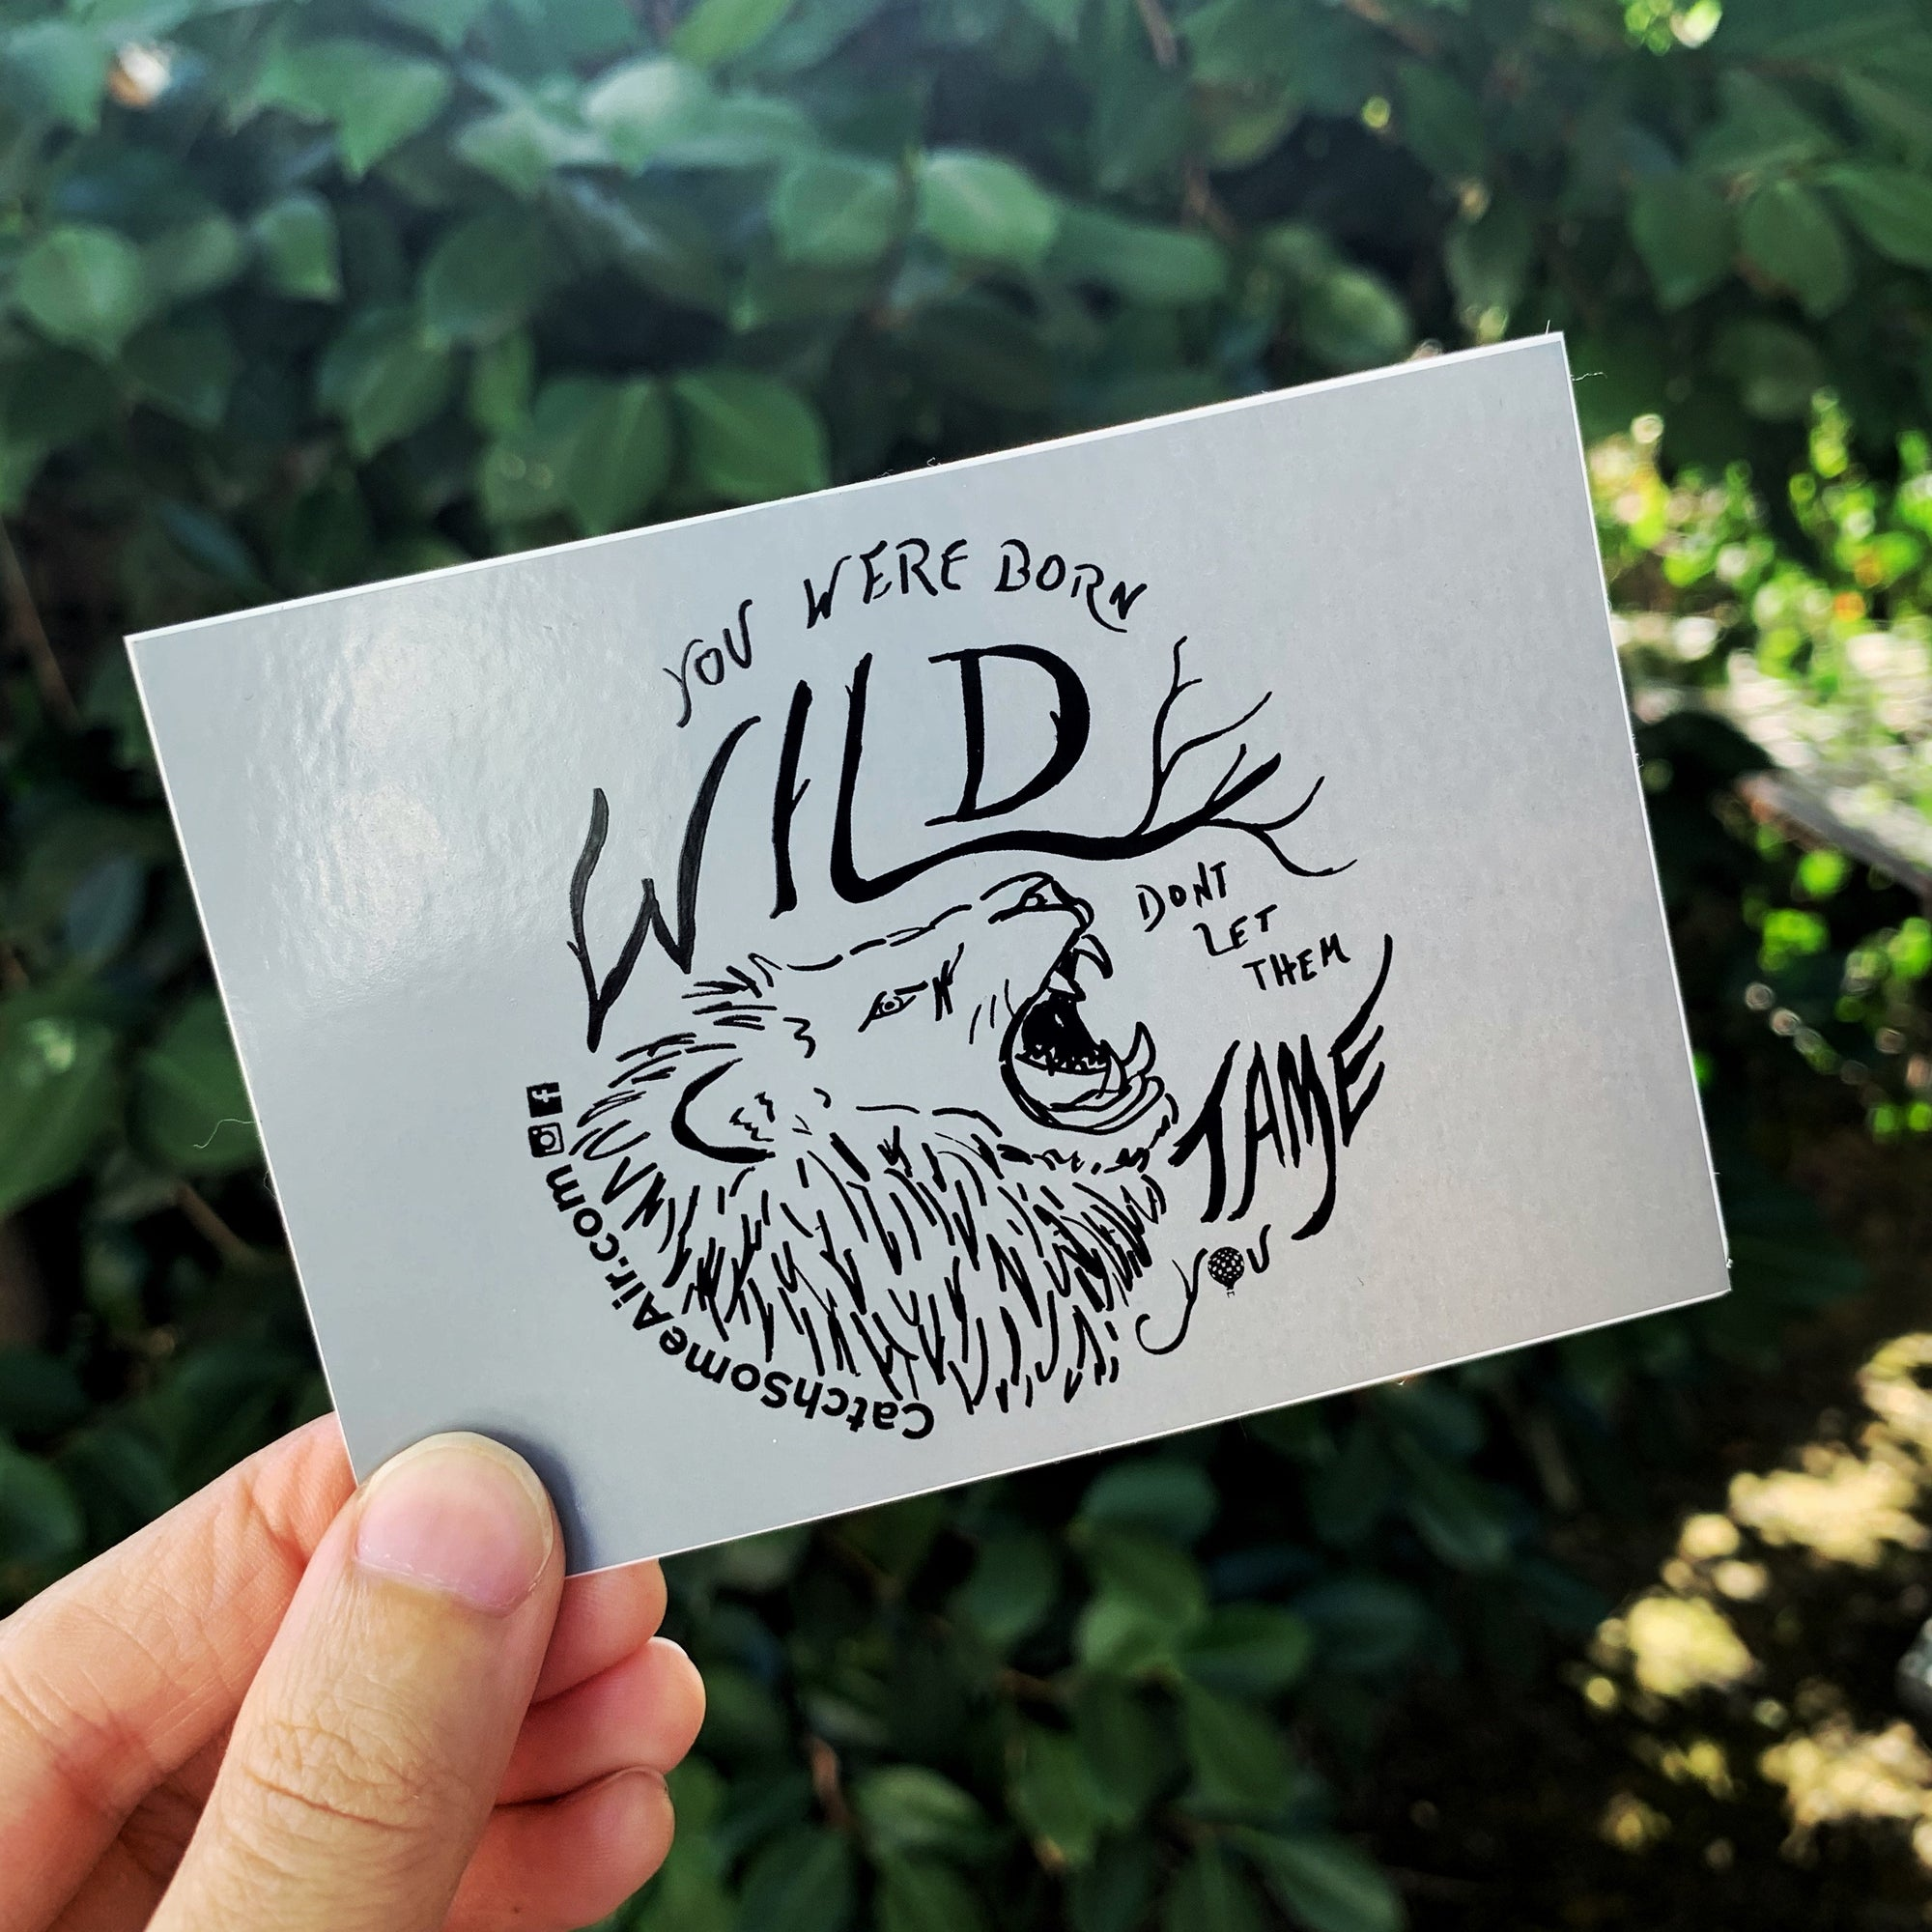 You were BORN WILD, don't let them TAME YOU | sticker